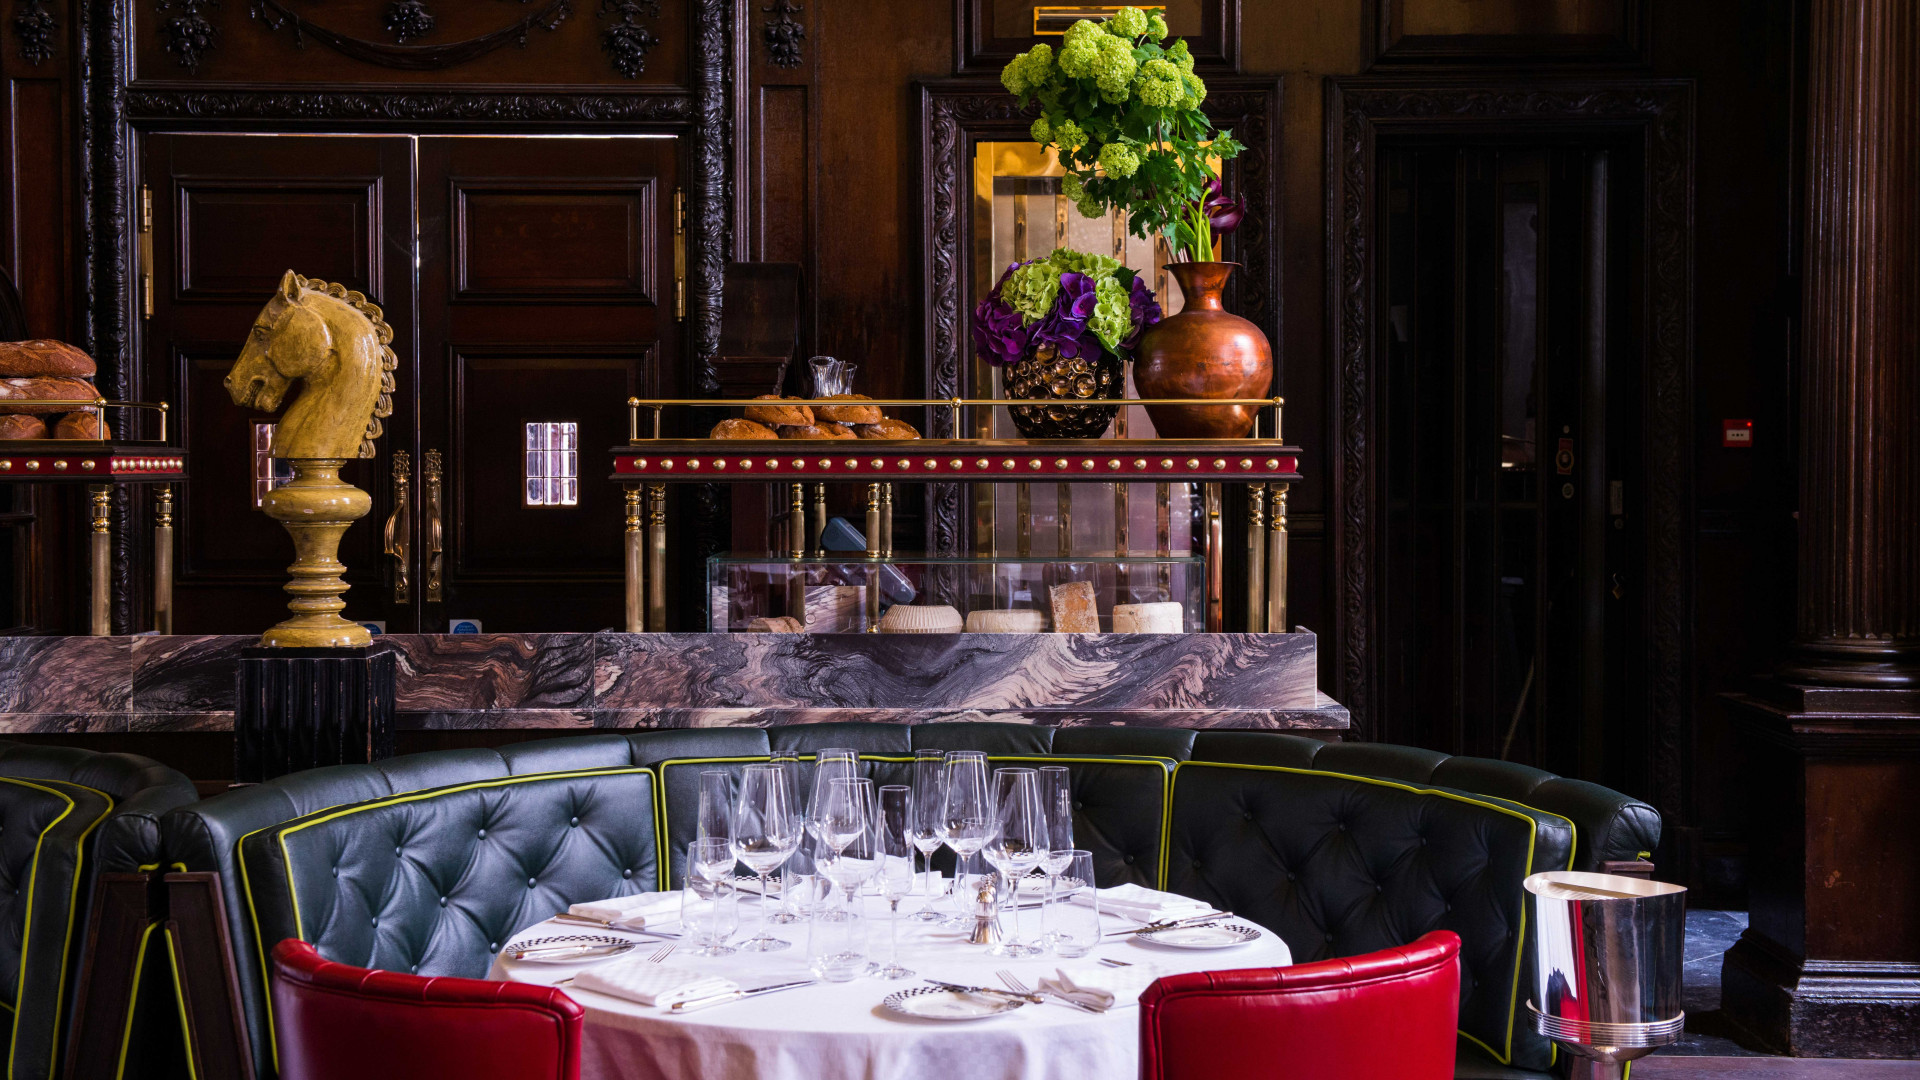 The grand divan table at Simspon's on the Strand